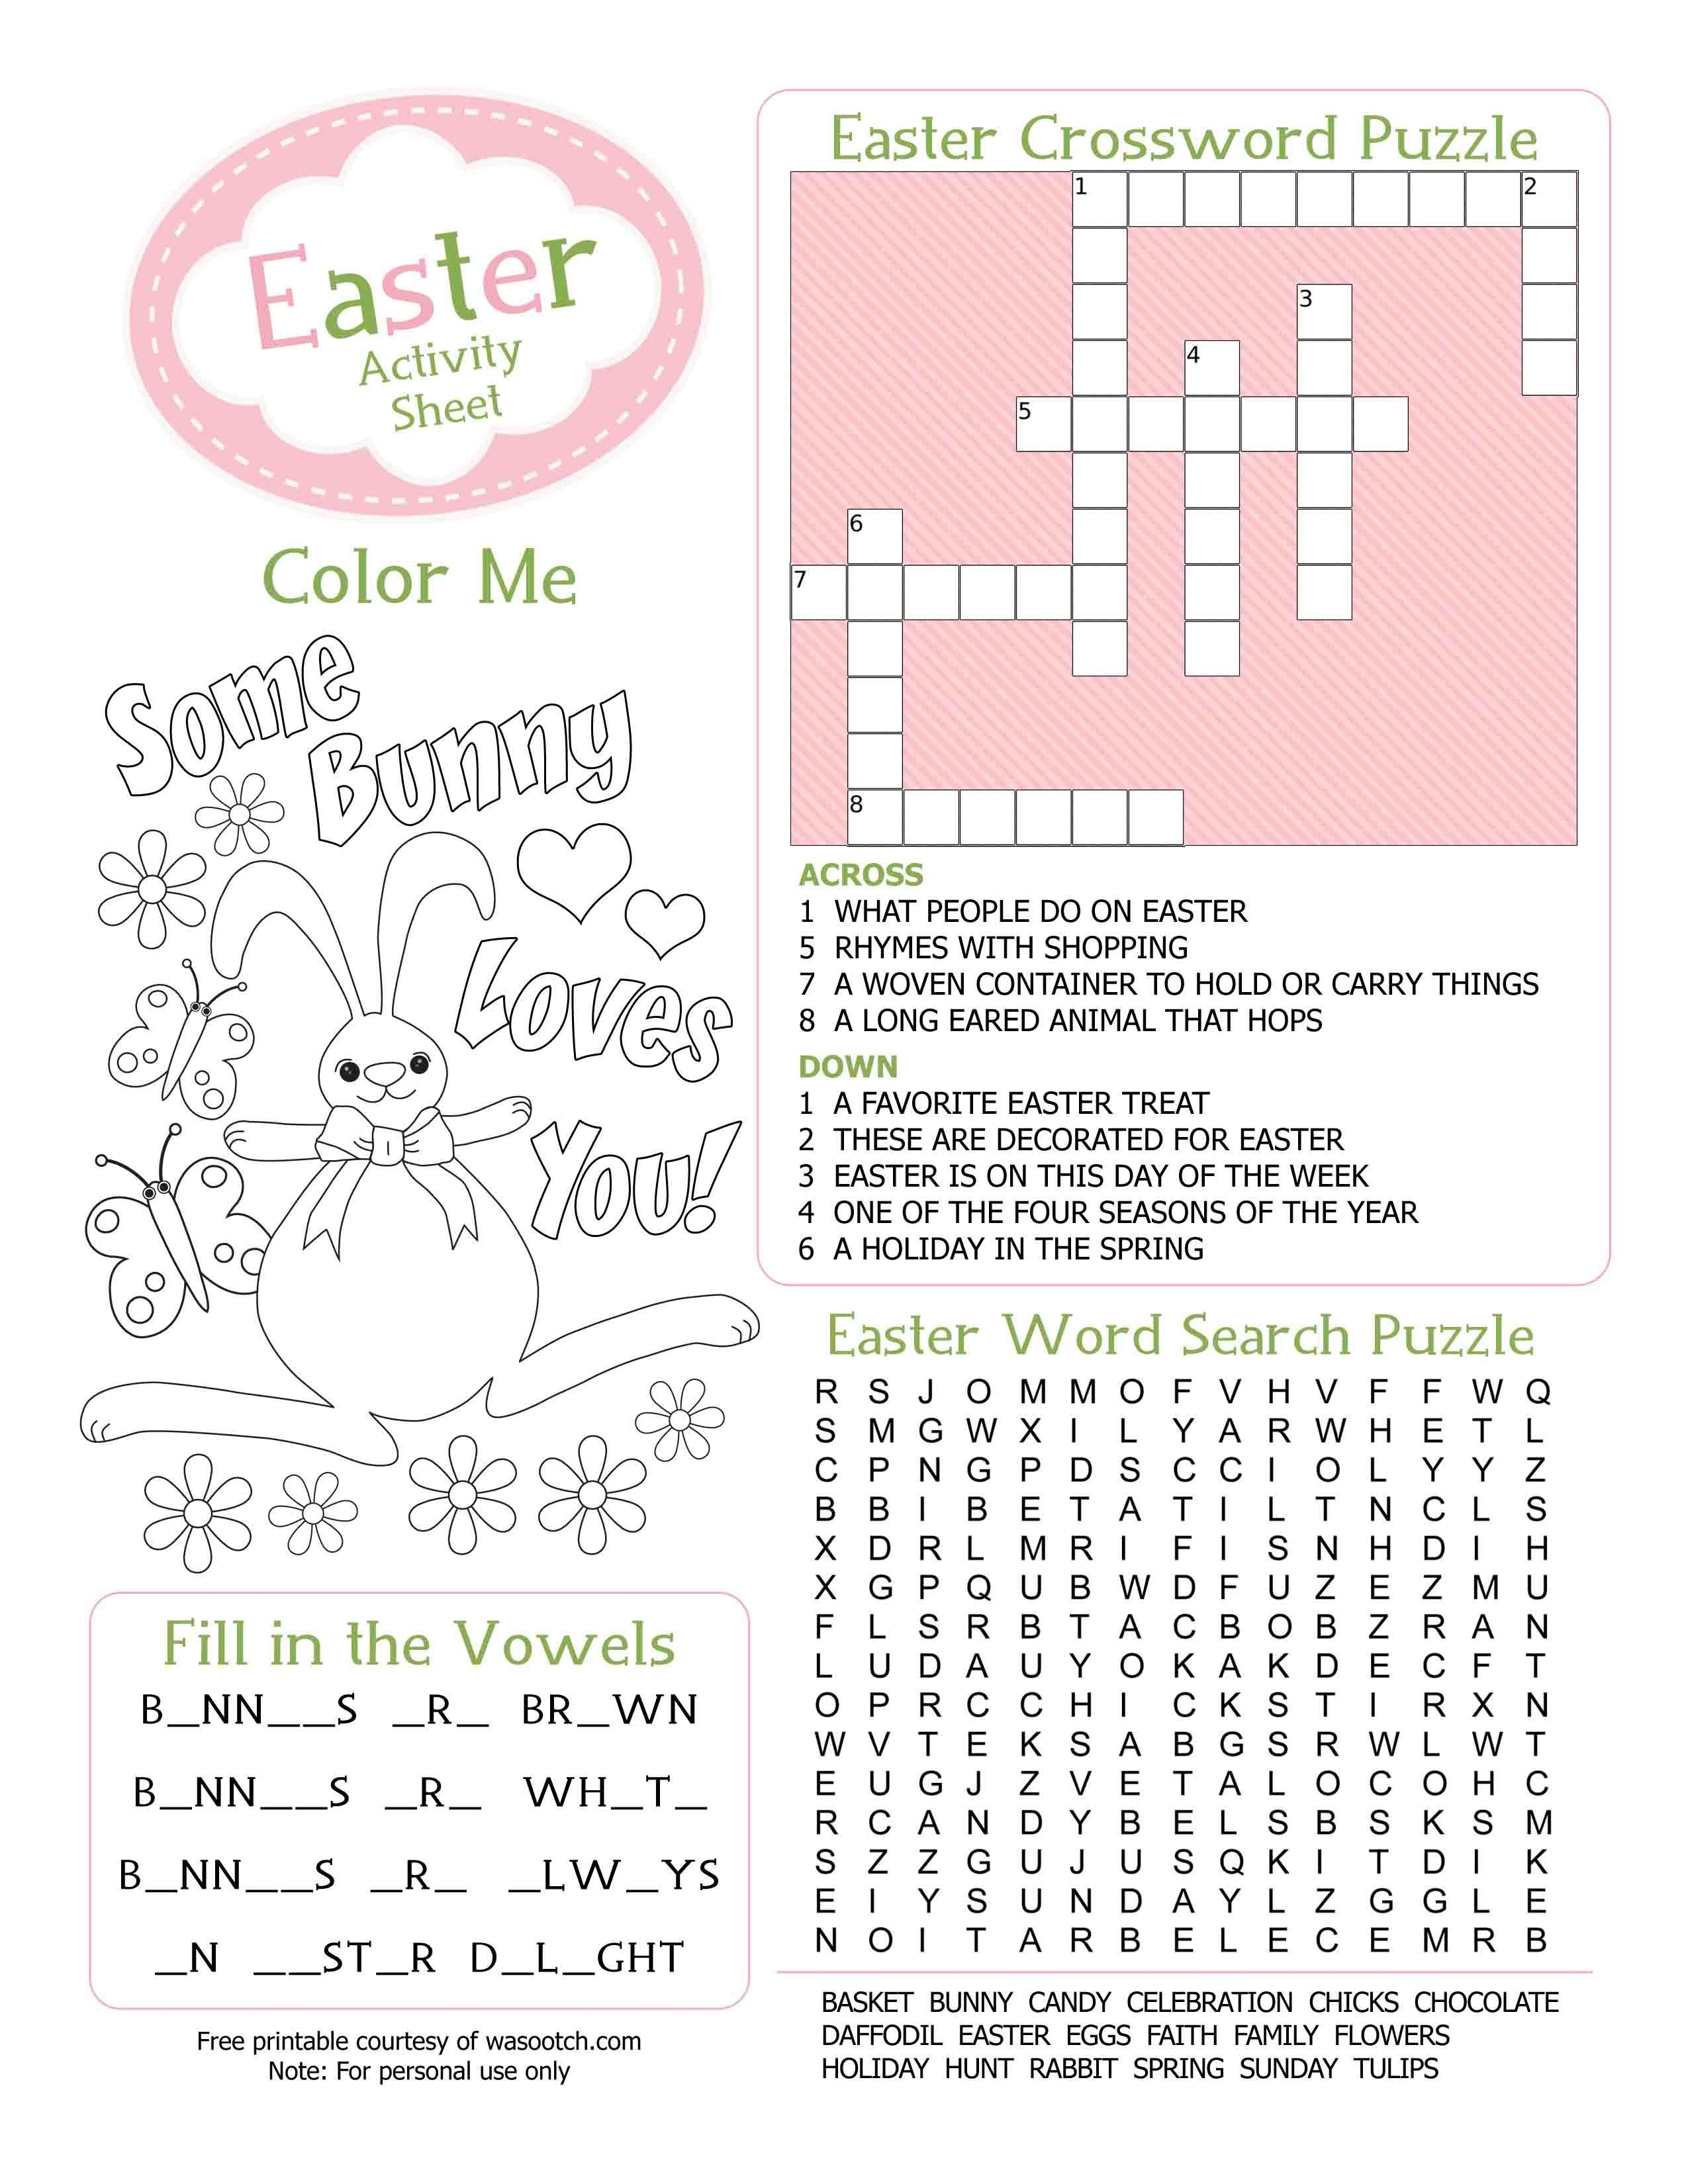 Easter Kid's Activity Sheet Free Printables Available @party - Free Printable Activities For Adults